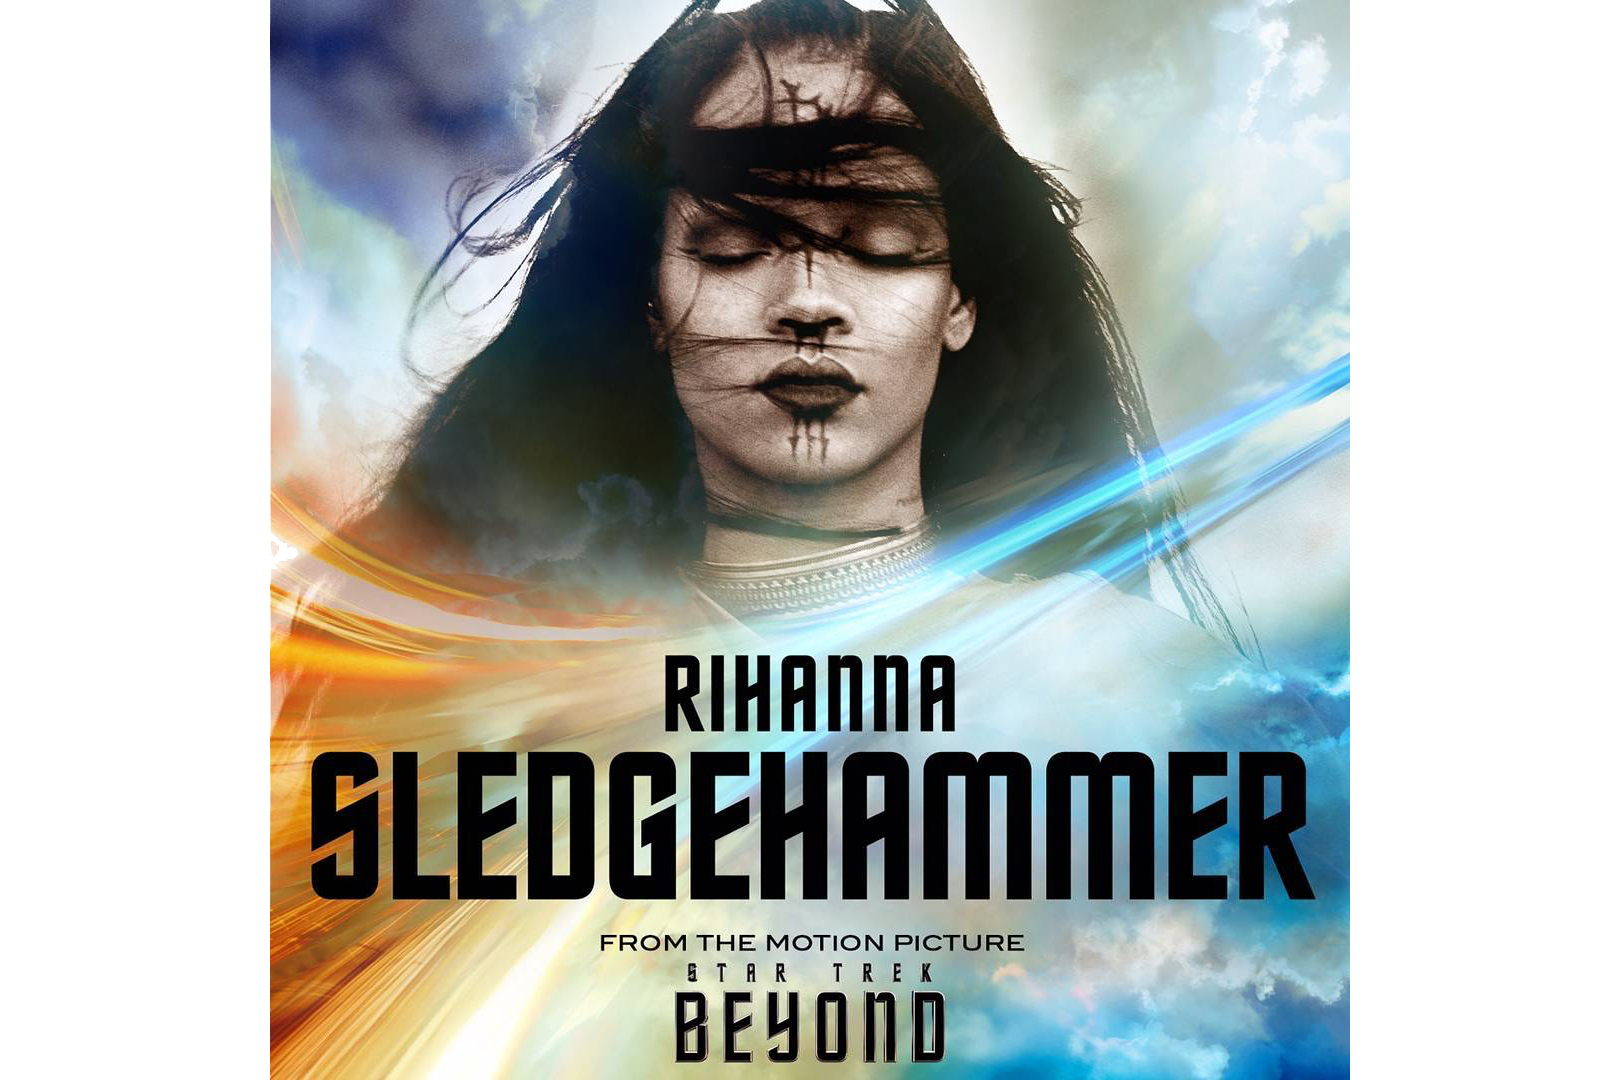 """Rihanna Complements 'Star Trek Beyond''s Latest Trailer With New Track, """"Sledgehammer"""""""